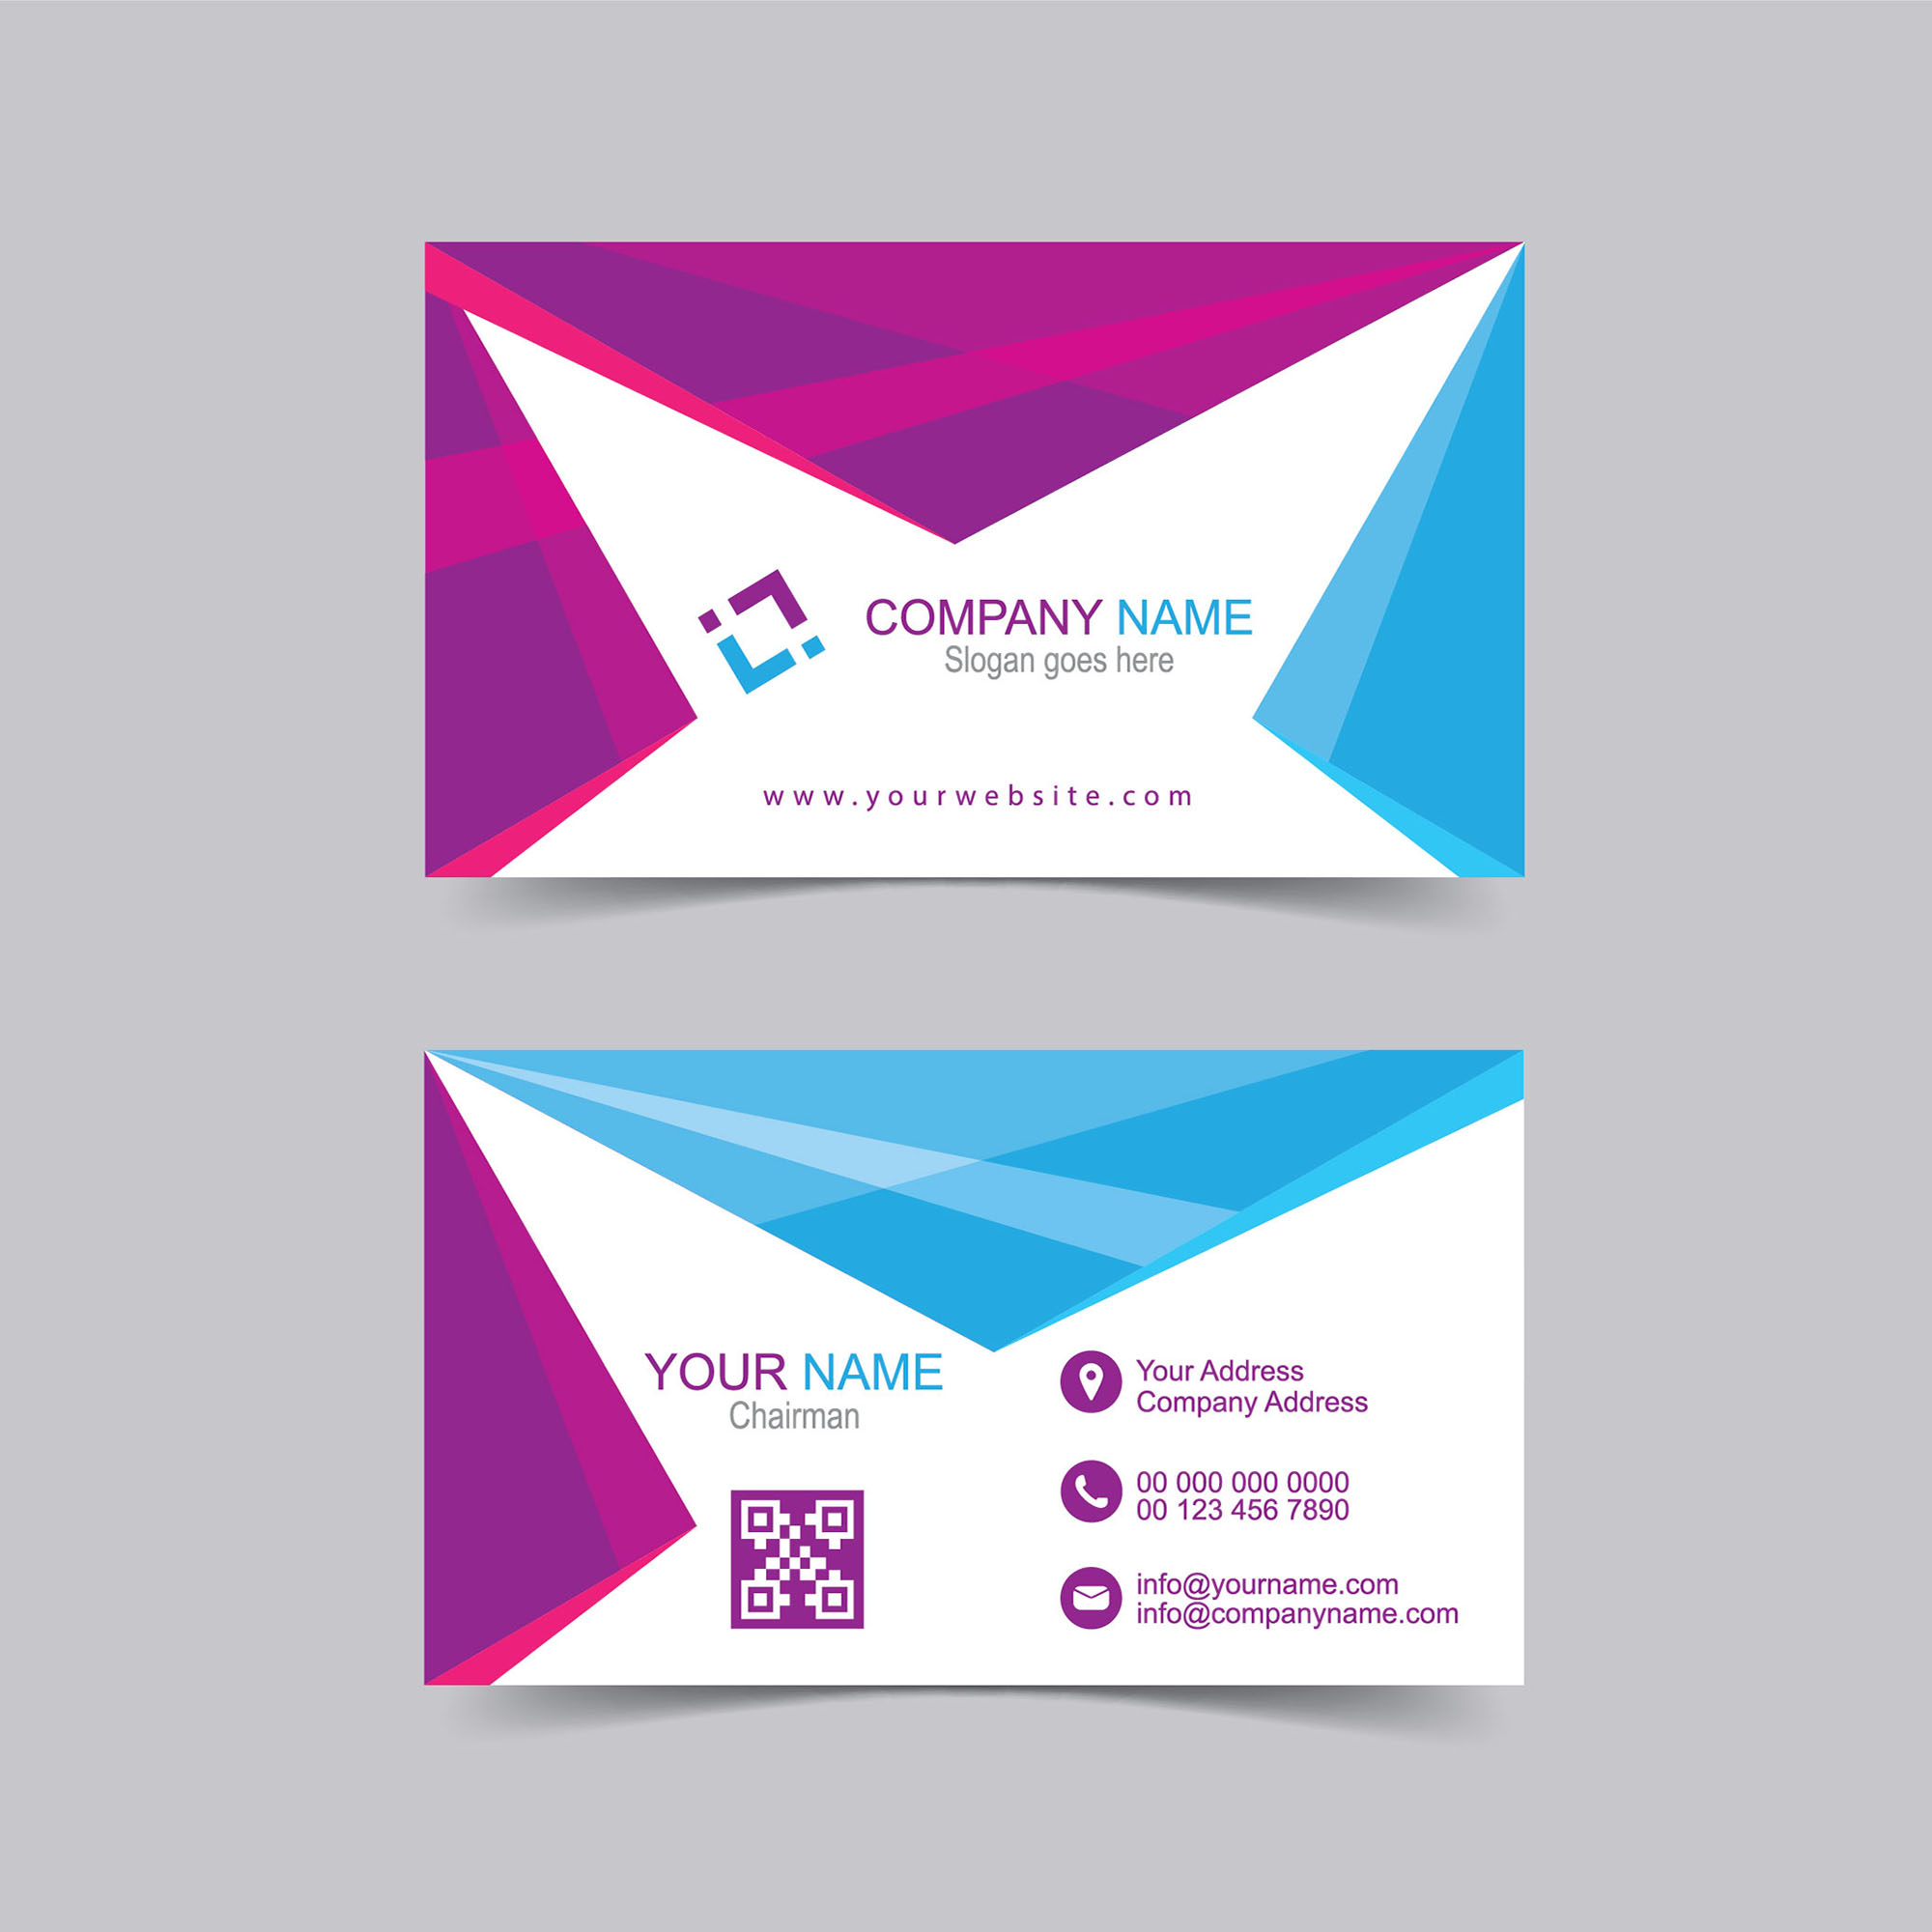 Visiting card vector template free download wisxi business card business cards business card design business card template design templates reheart Choice Image